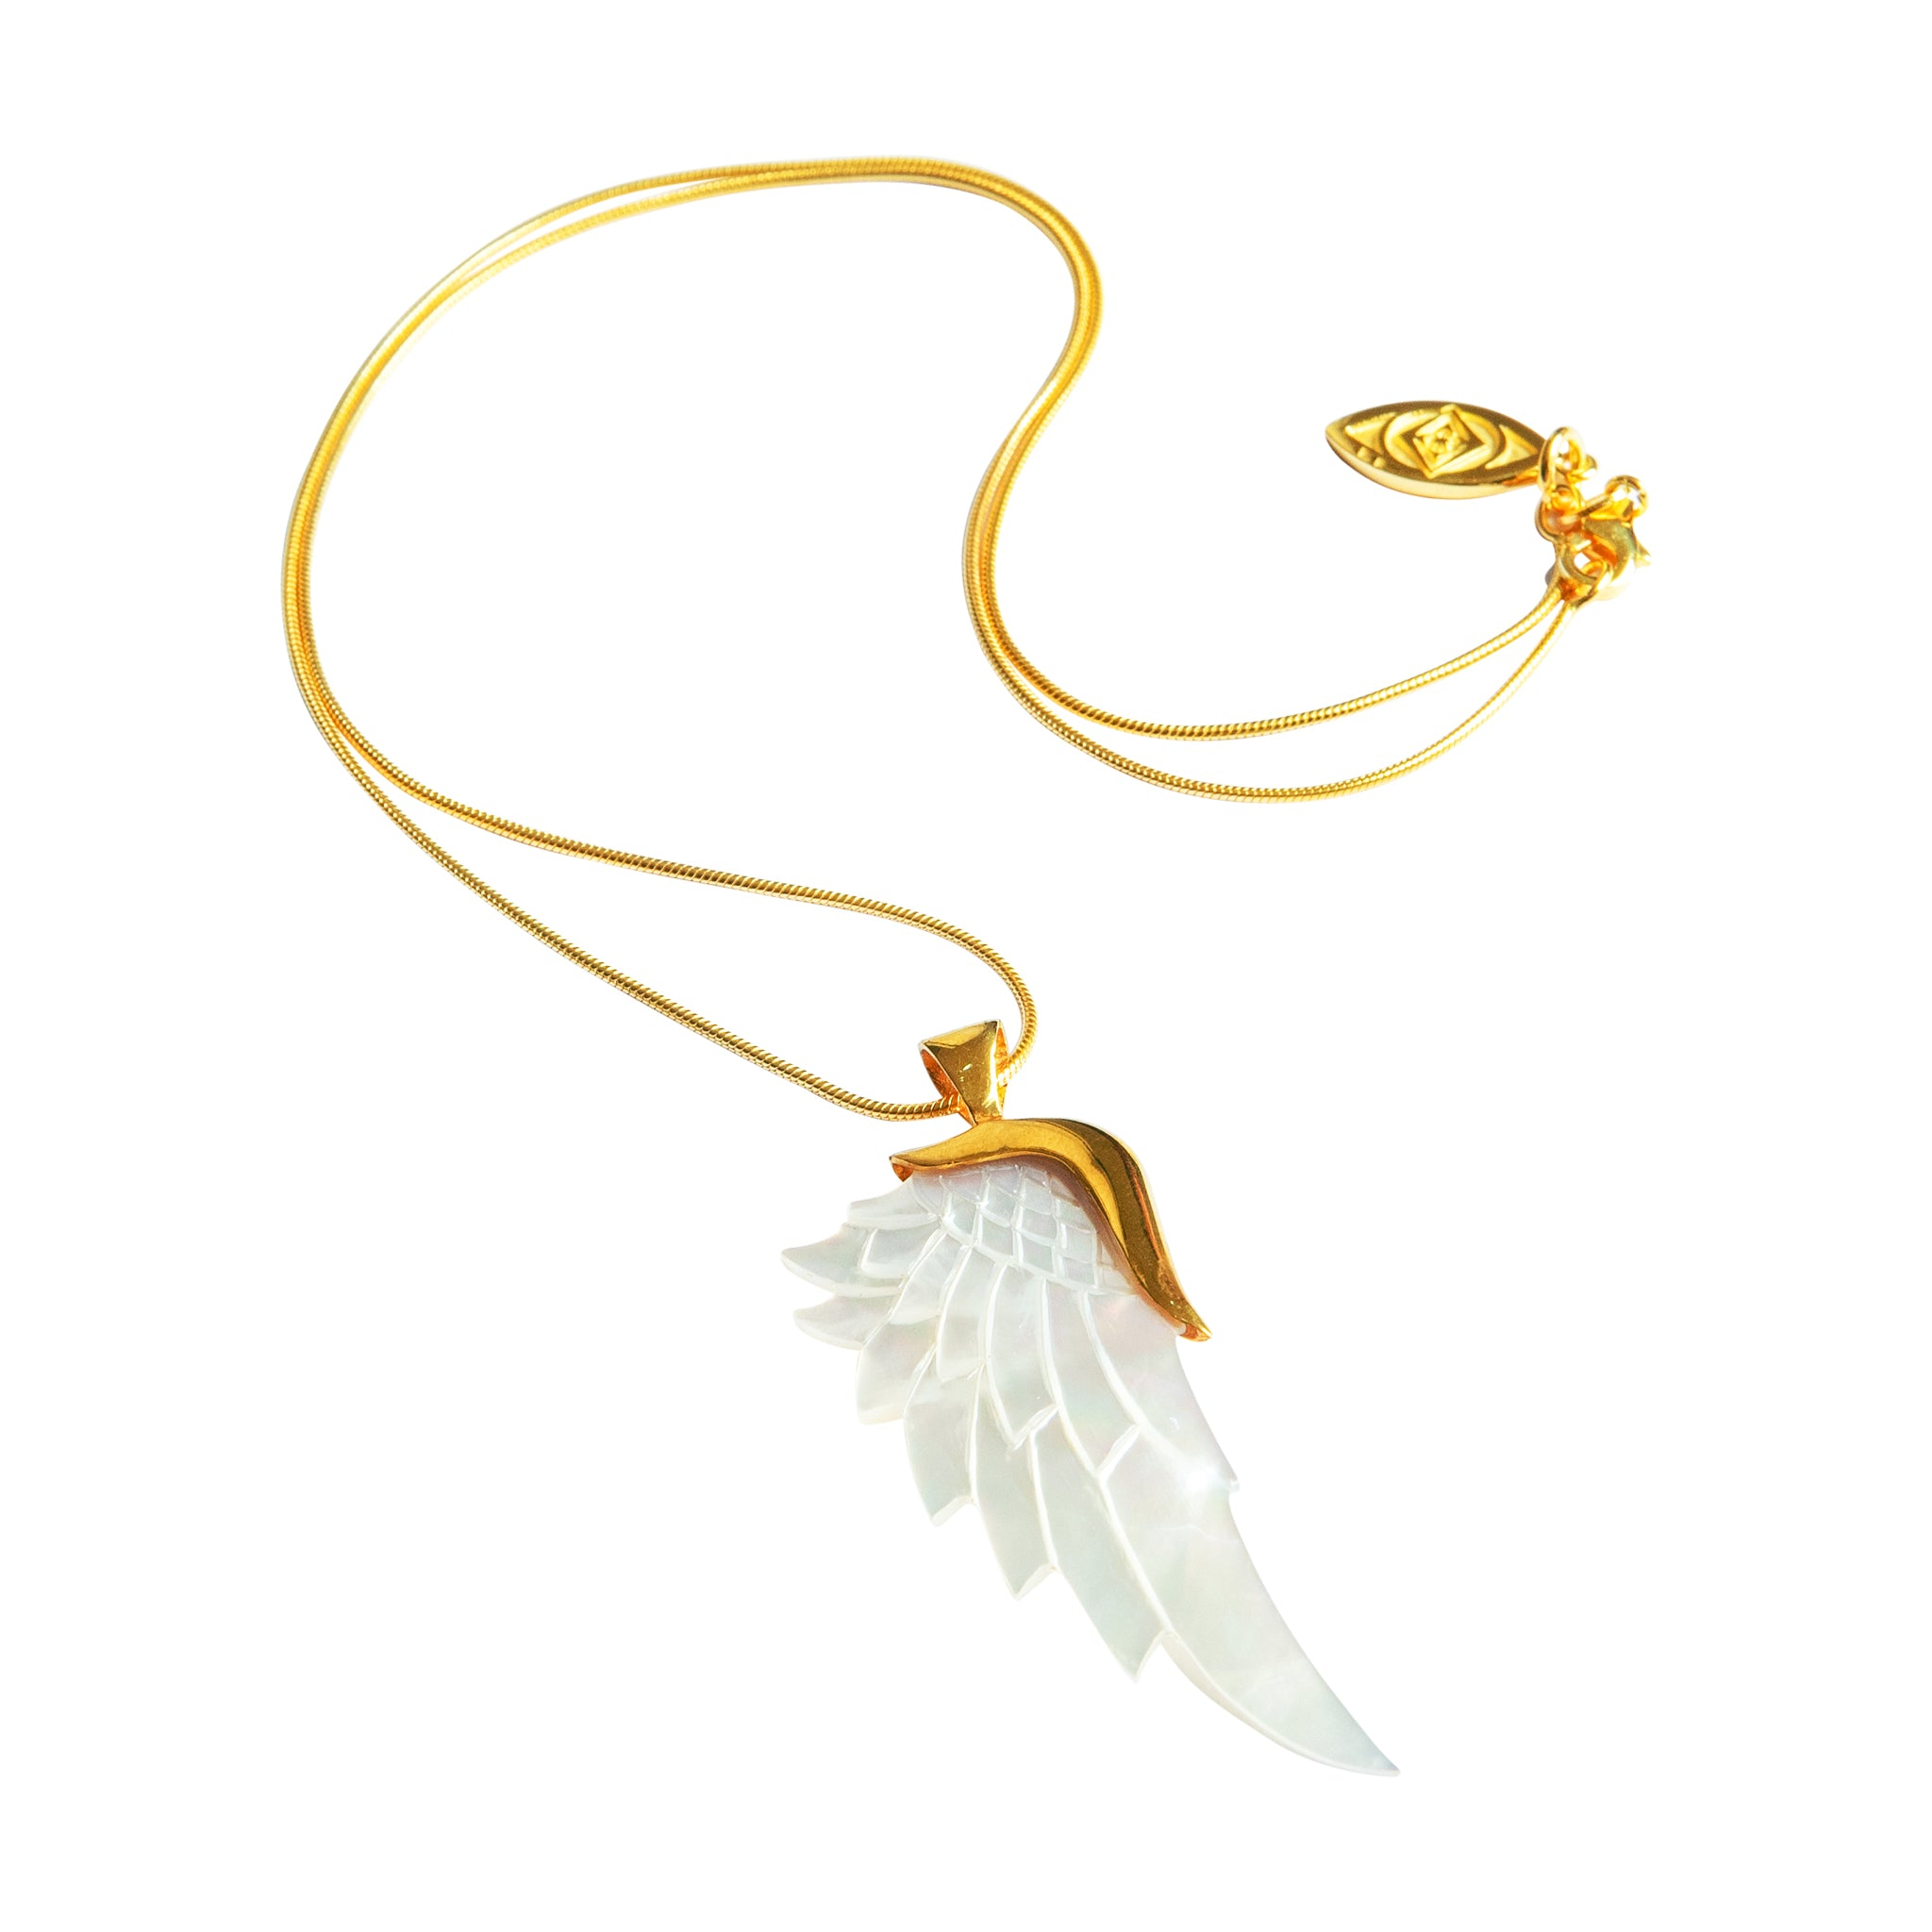 angelica white gold angel wing necklace to Manifest abundance